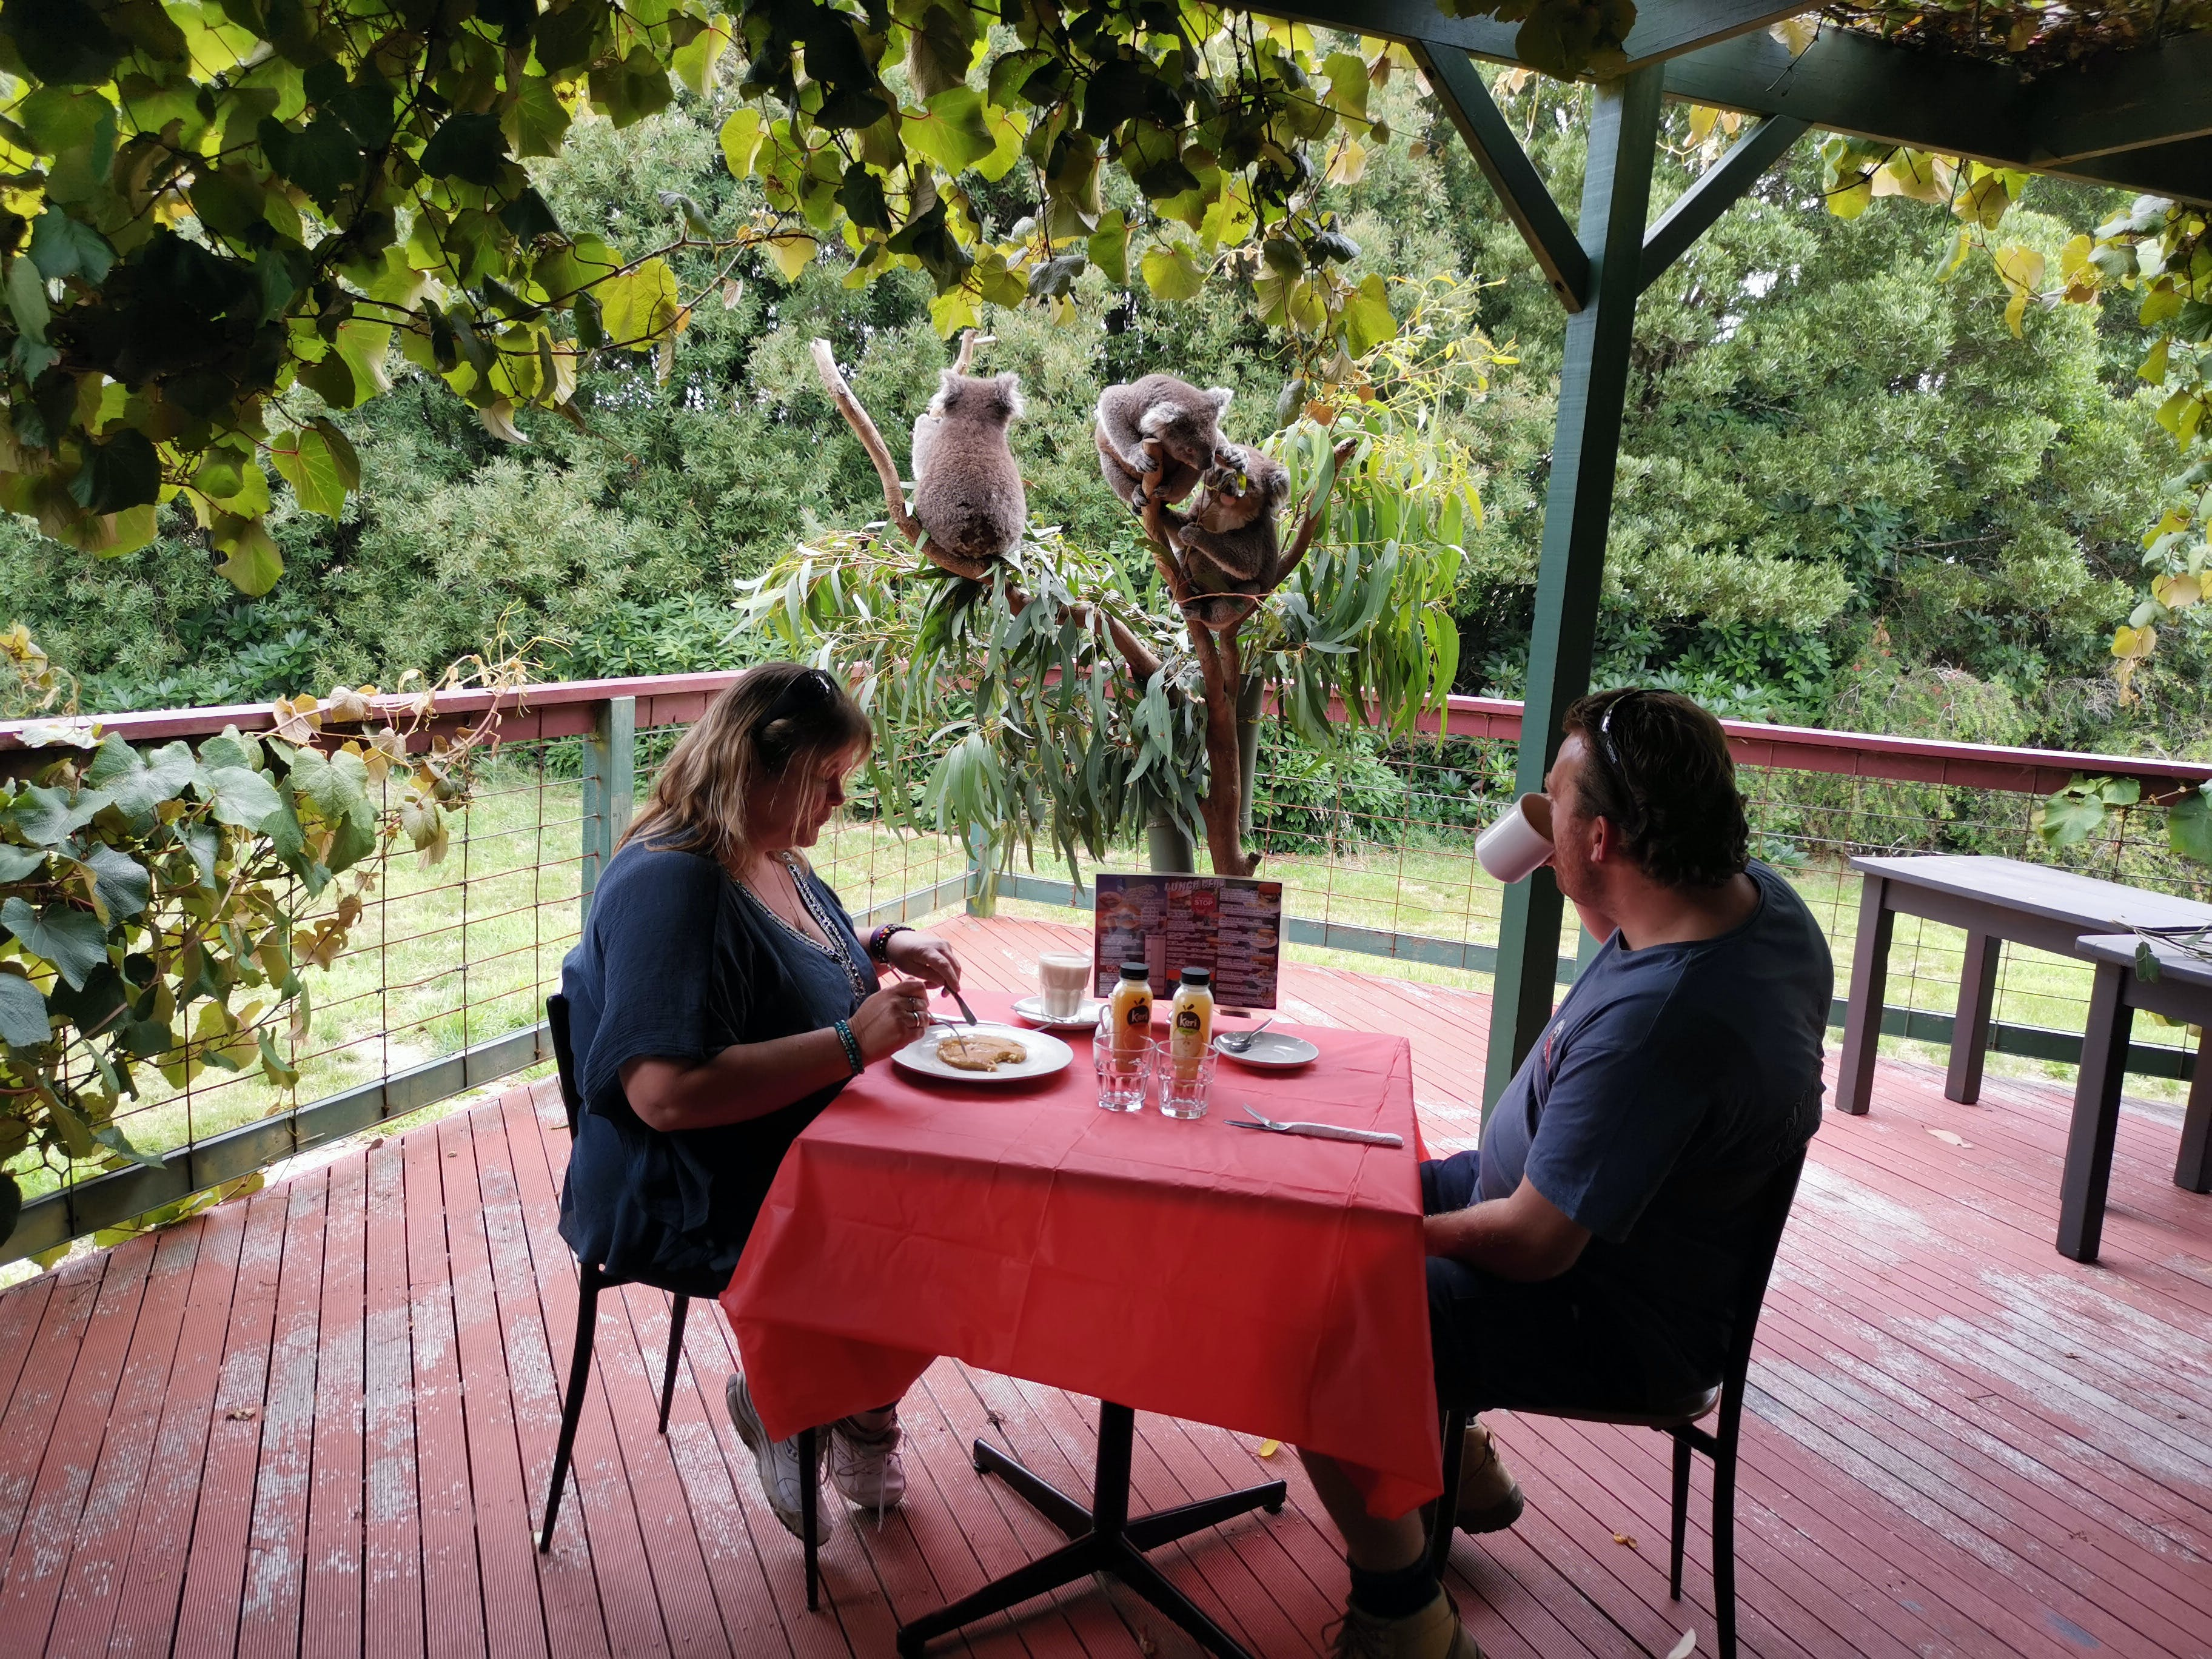 The Aussie Stop offering Breakfast with Koalas - Accommodation BNB